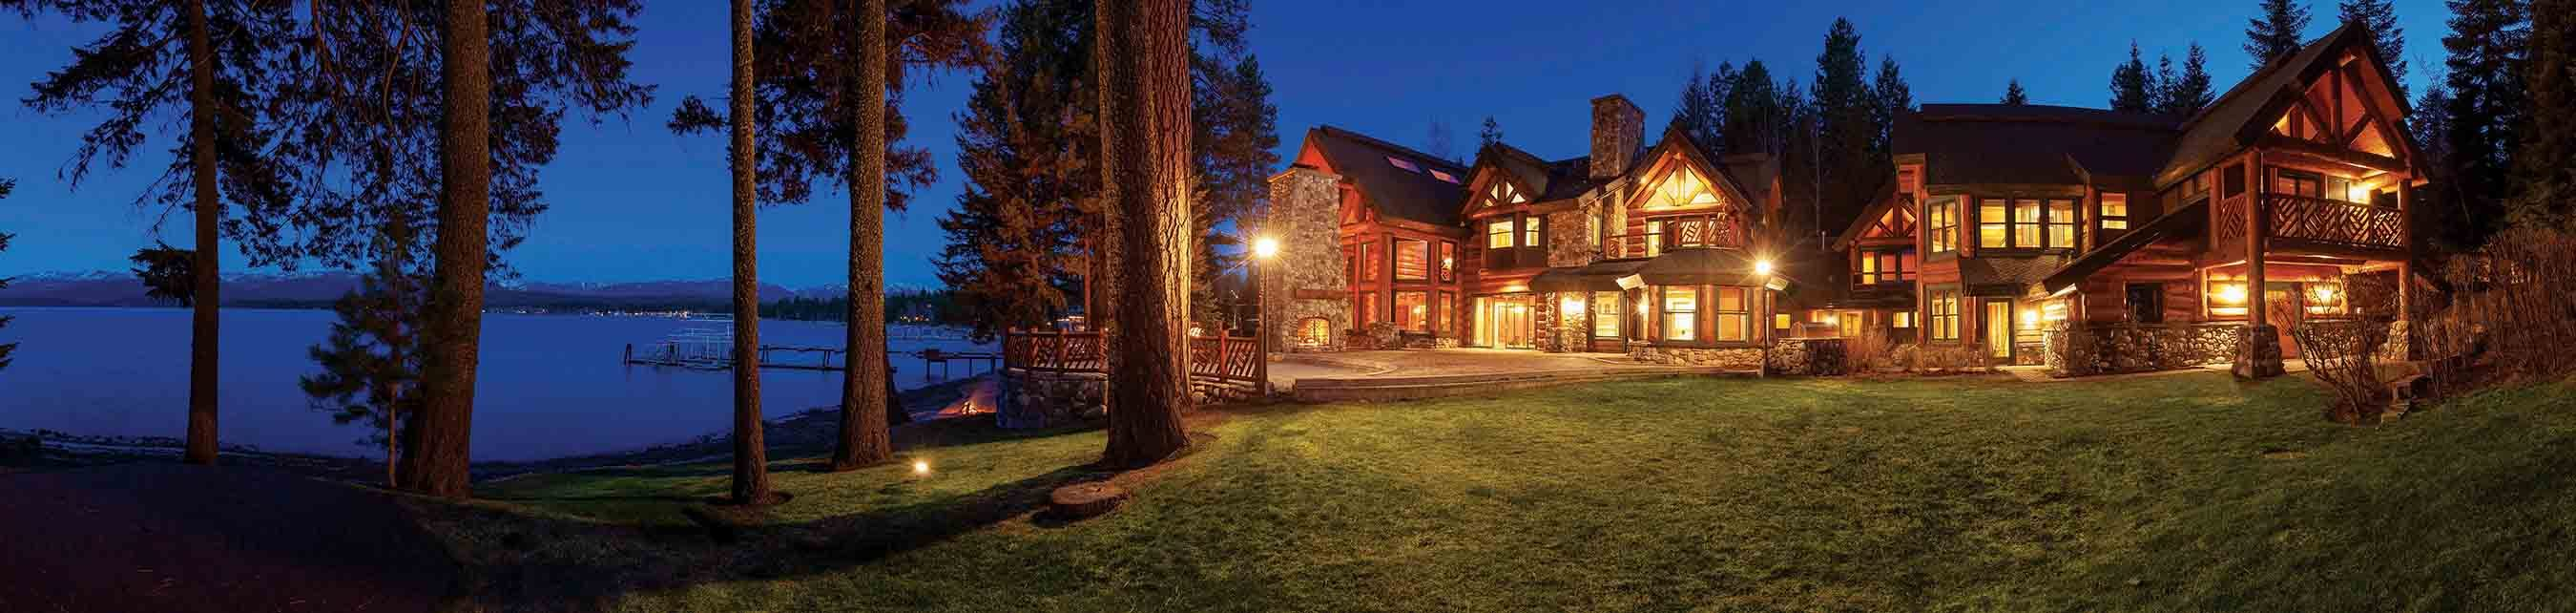 Whitetail Club's New Lakefront Clubhouse (Photo: Business Wire)